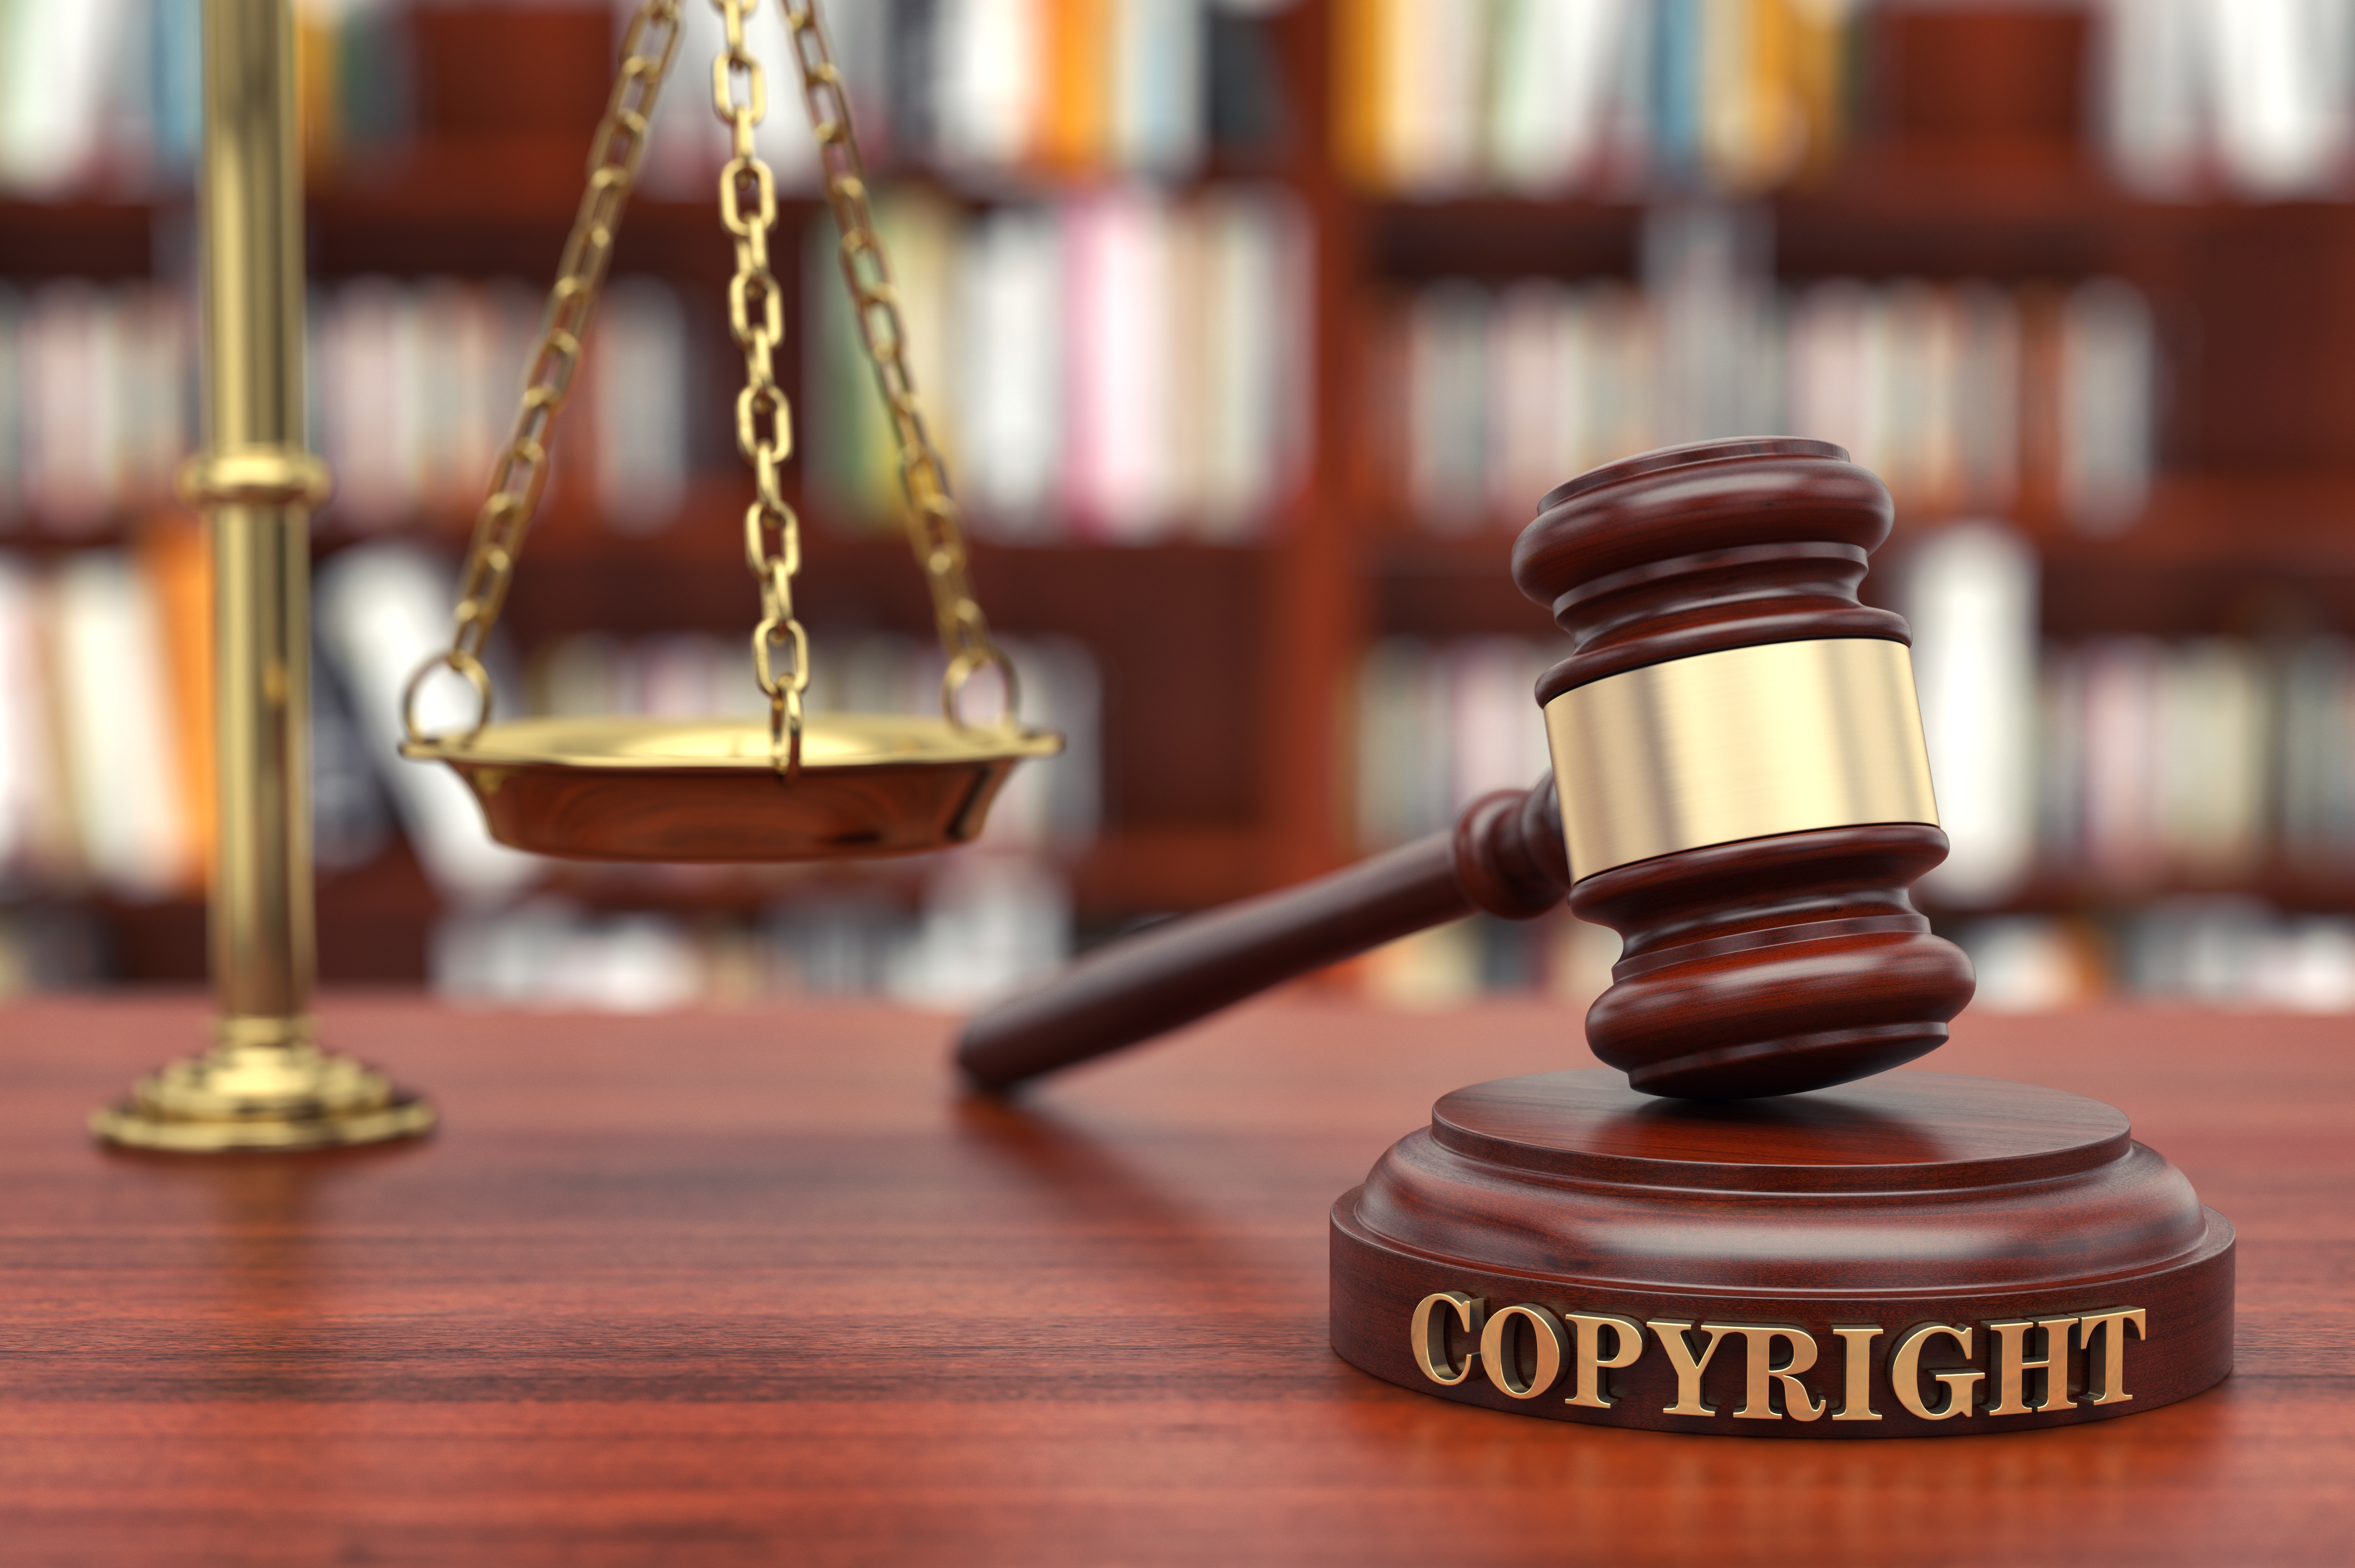 European Commission Announces New EU Copyright Rules